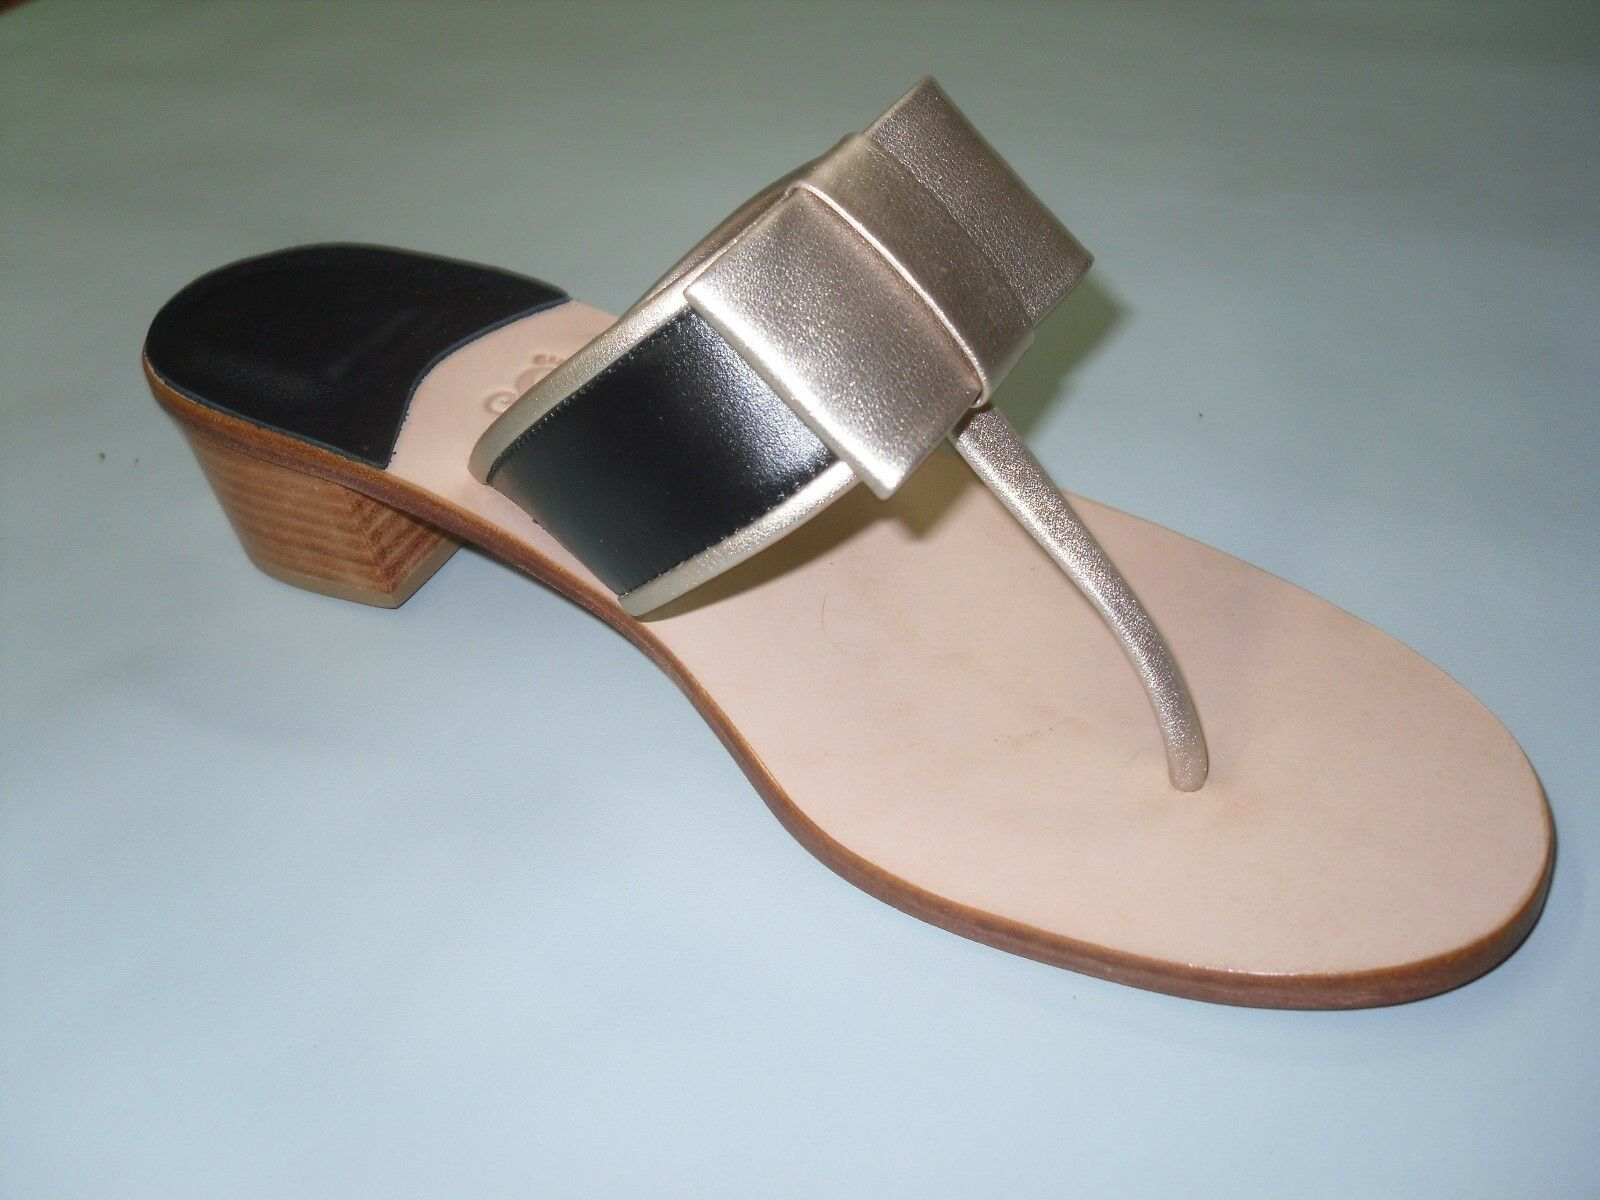 Ladies sandals, all Leather, Leather, Leather, hand made, Dimensiones 7, 8, 9, 10, back, tan and oro bfc2d7